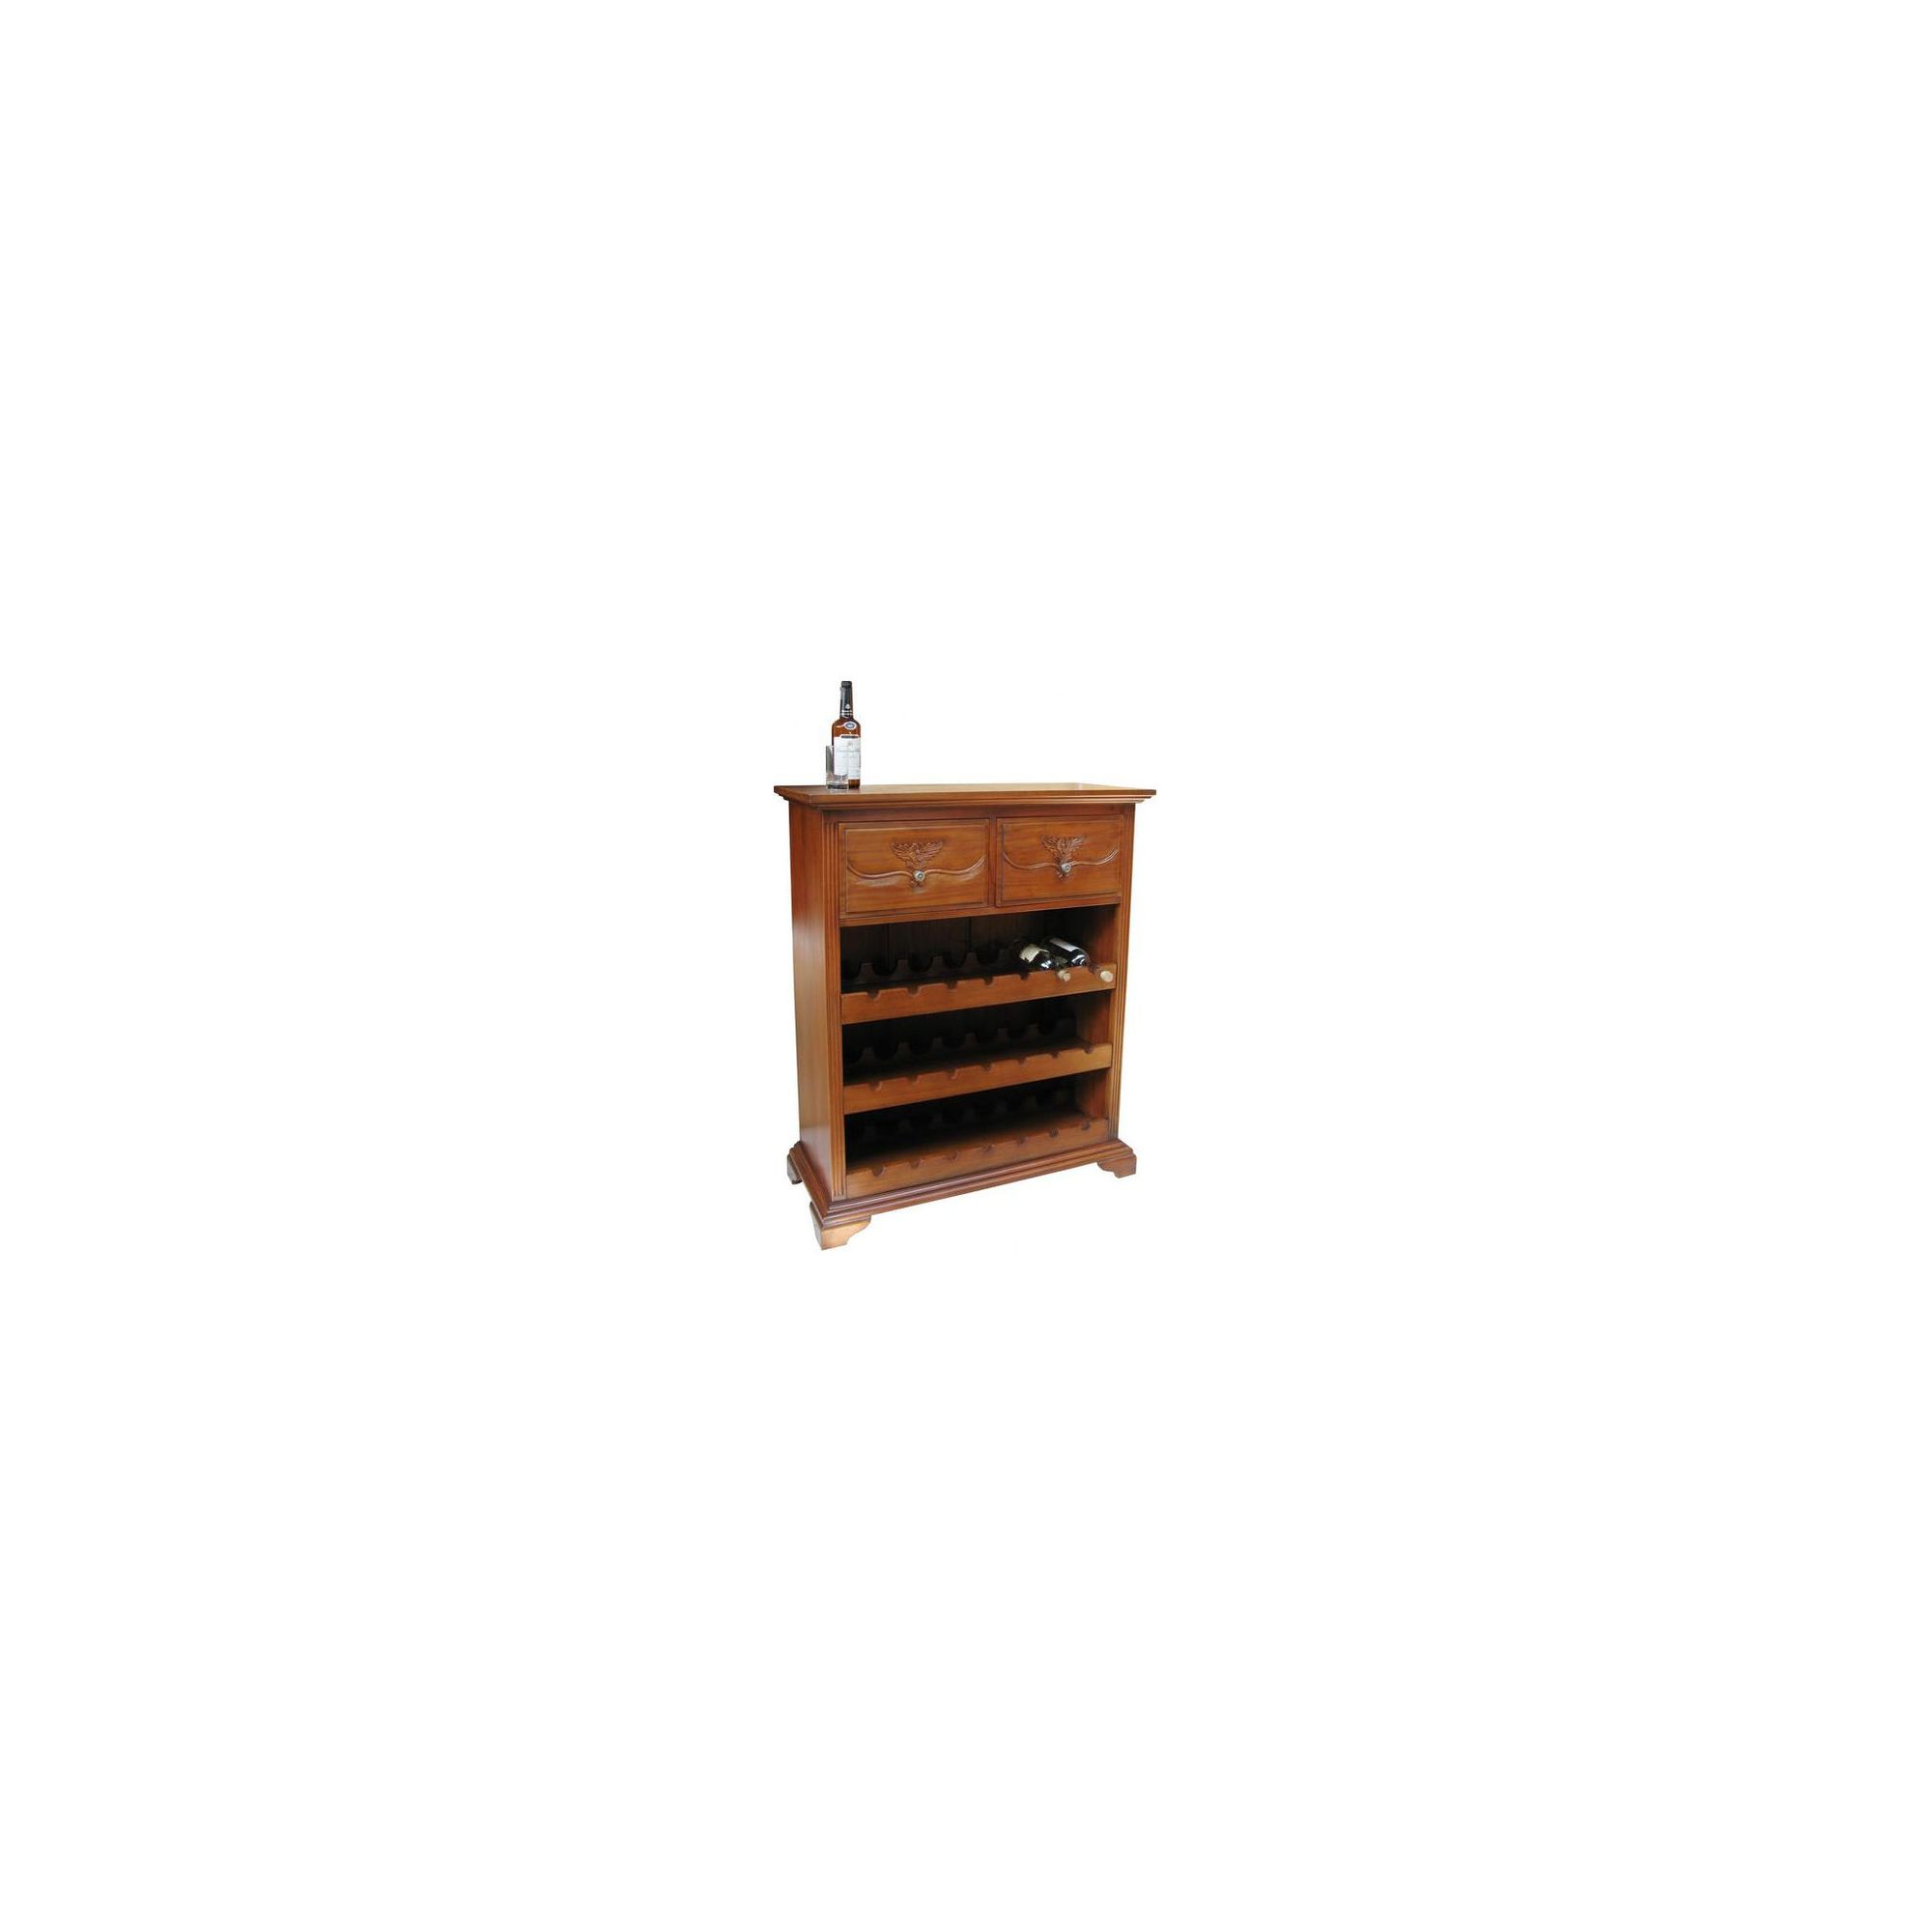 Lock stock and barrel Mahogany 2 Drawer Wine Rack in Mahogany at Tescos Direct